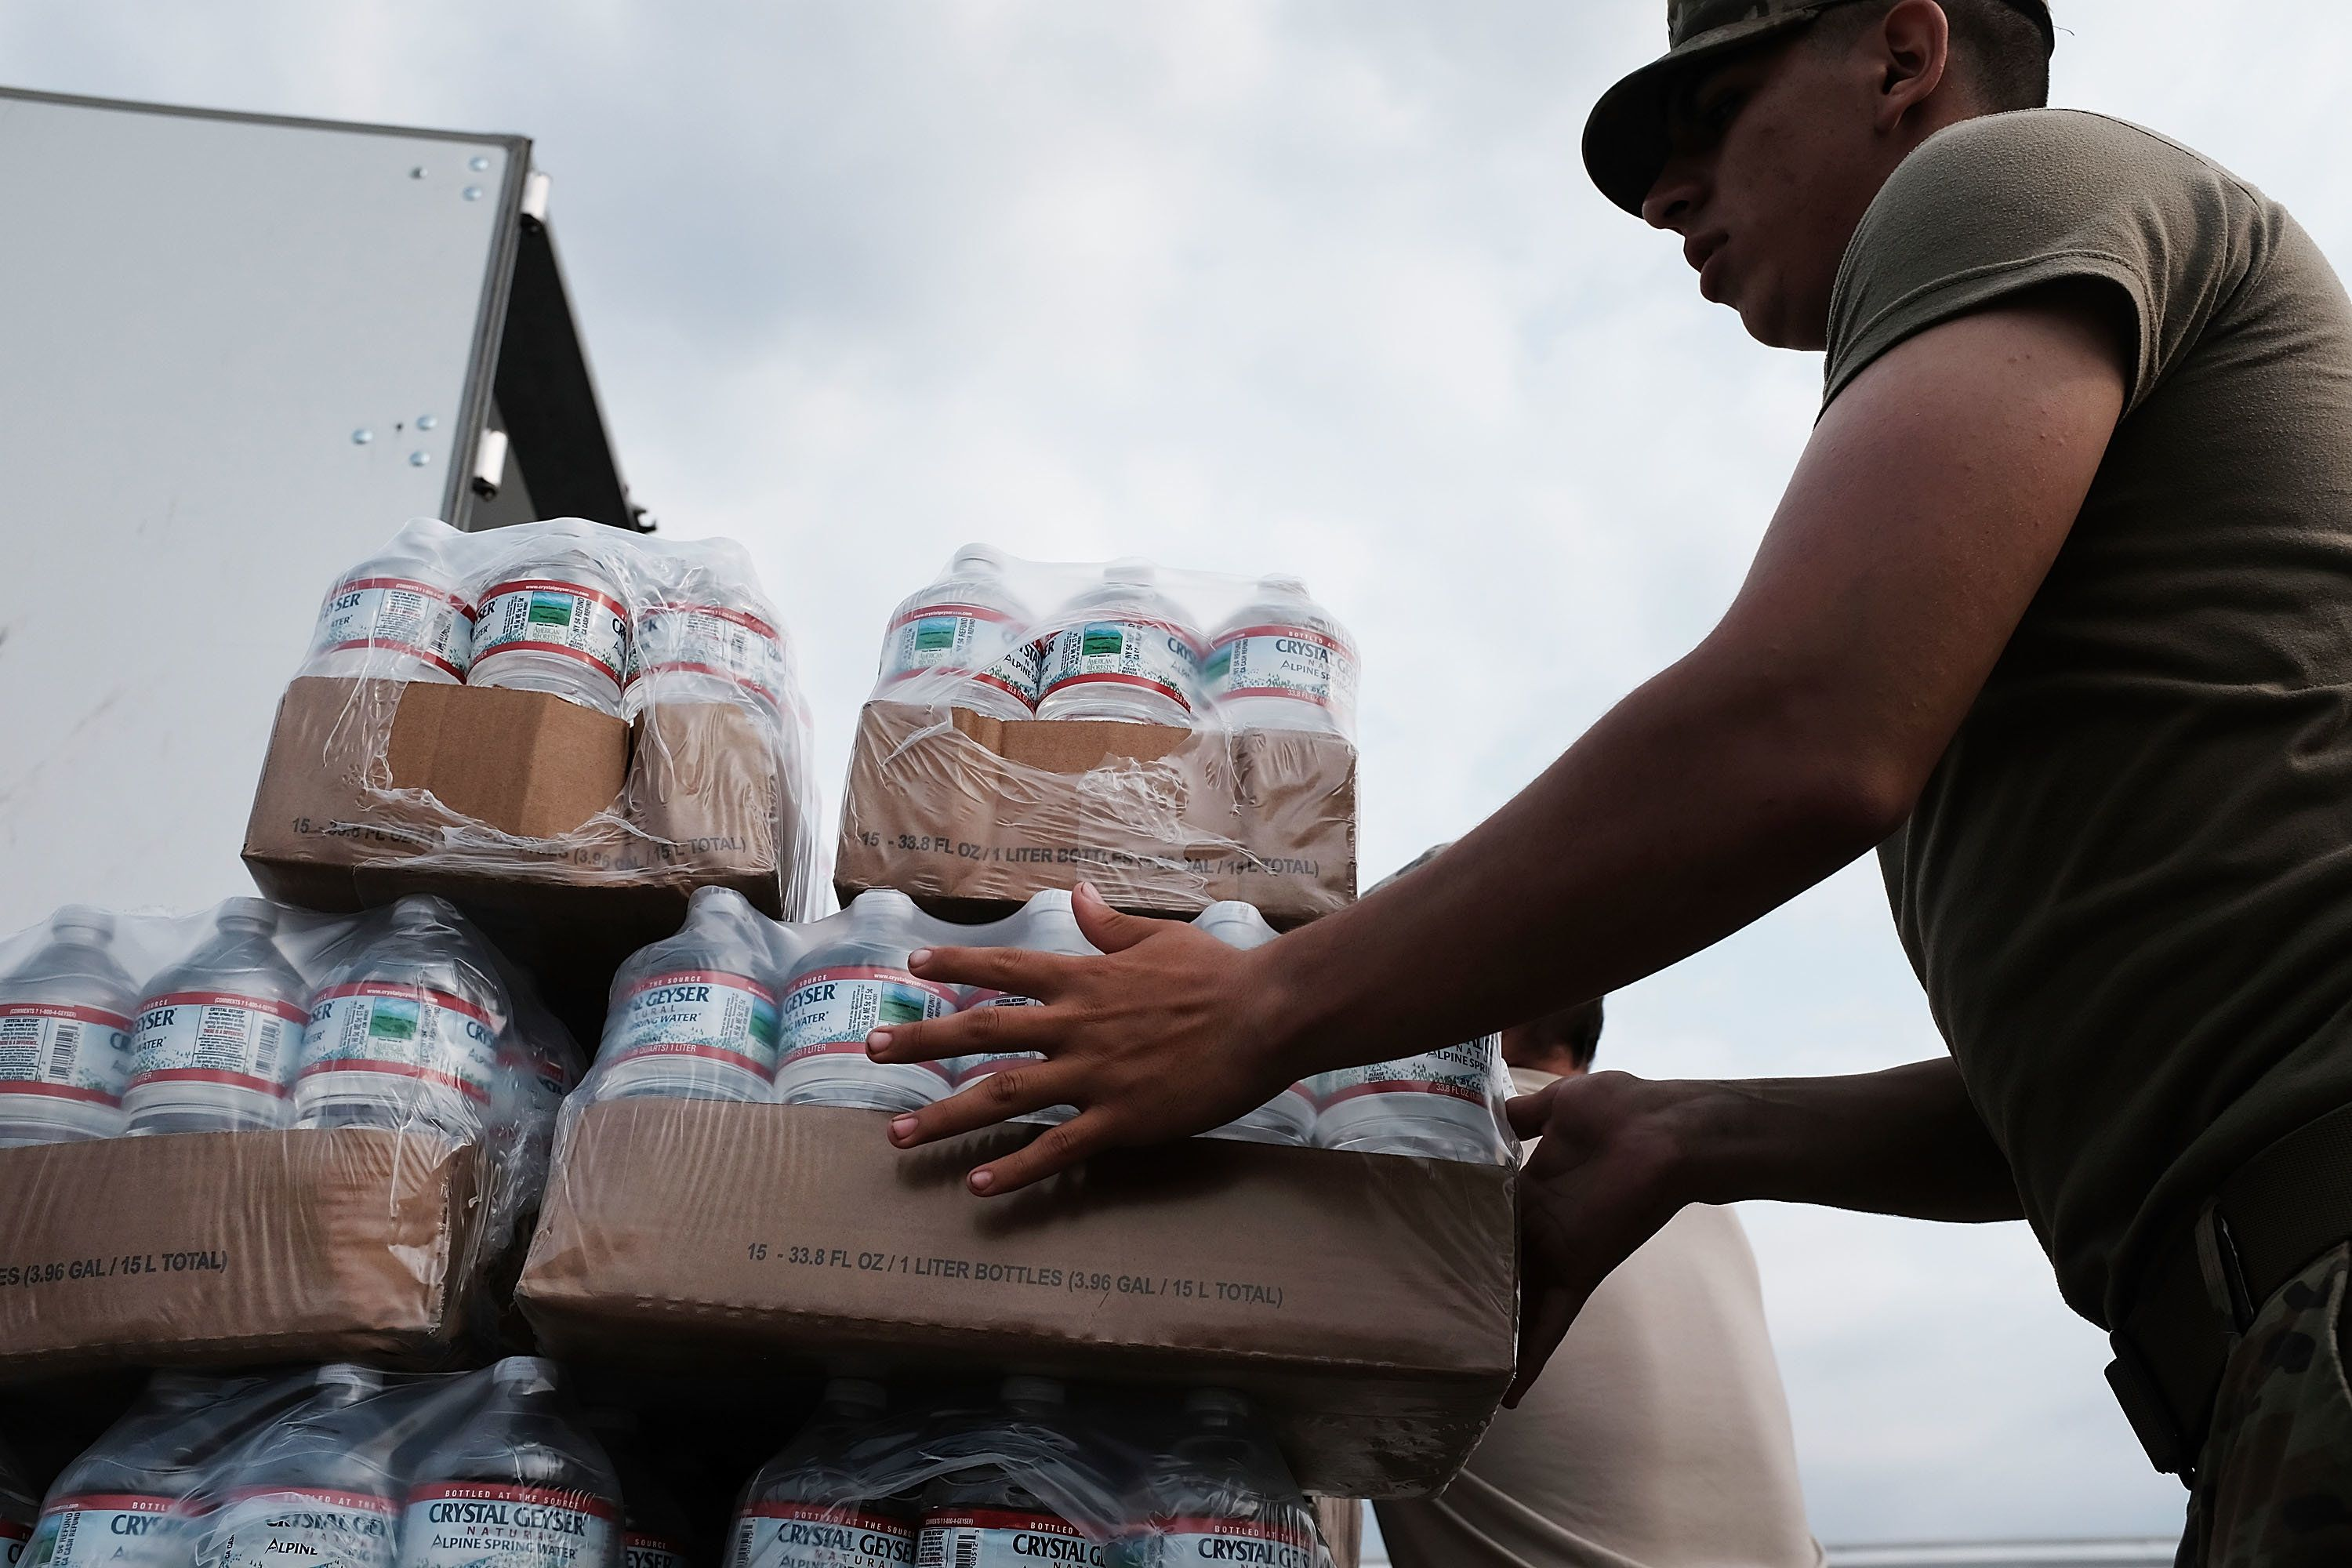 ORANGE, TX - SEPTEMBER 06:  Members of the Texas National Guard prepare to distribute water and emergency meals as Texas slowly moves toward recovery from the devastation of Hurricane Harvey on September 6, 2017 in Orange, Texas. Almost a week after Hurricane Harvey ravaged parts of the state, some neighborhoods still remained flooded and without electricity. While downtown Houston is returning to business, thousands continue to live in shelters, hotels and other accommodations as they contemplate their future.  (Photo by Spencer Platt/Getty Images)